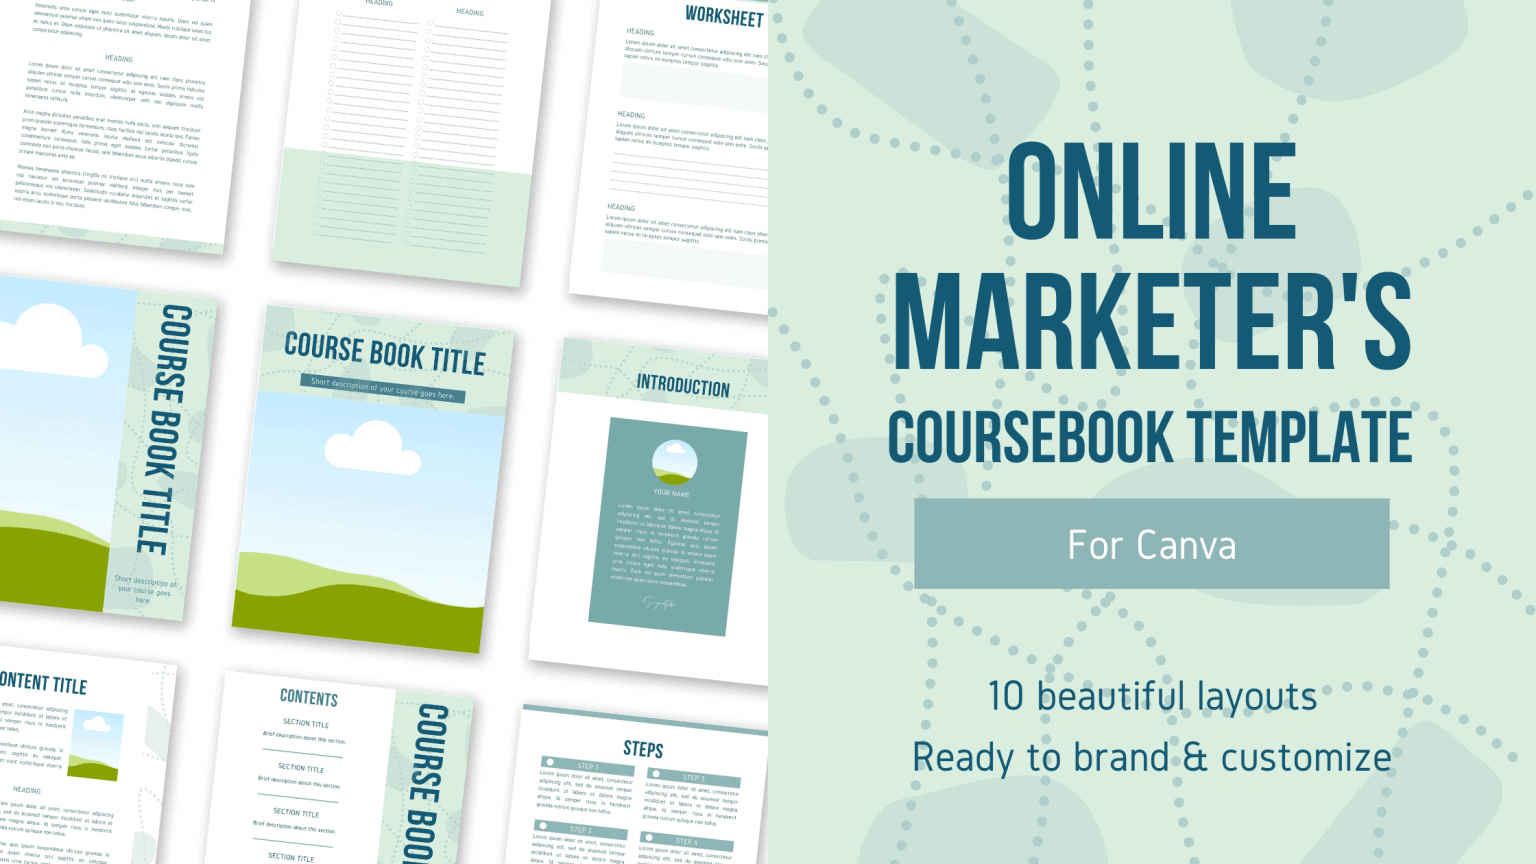 Online Marketers Coursebook Free Canva PLR Workbook Template